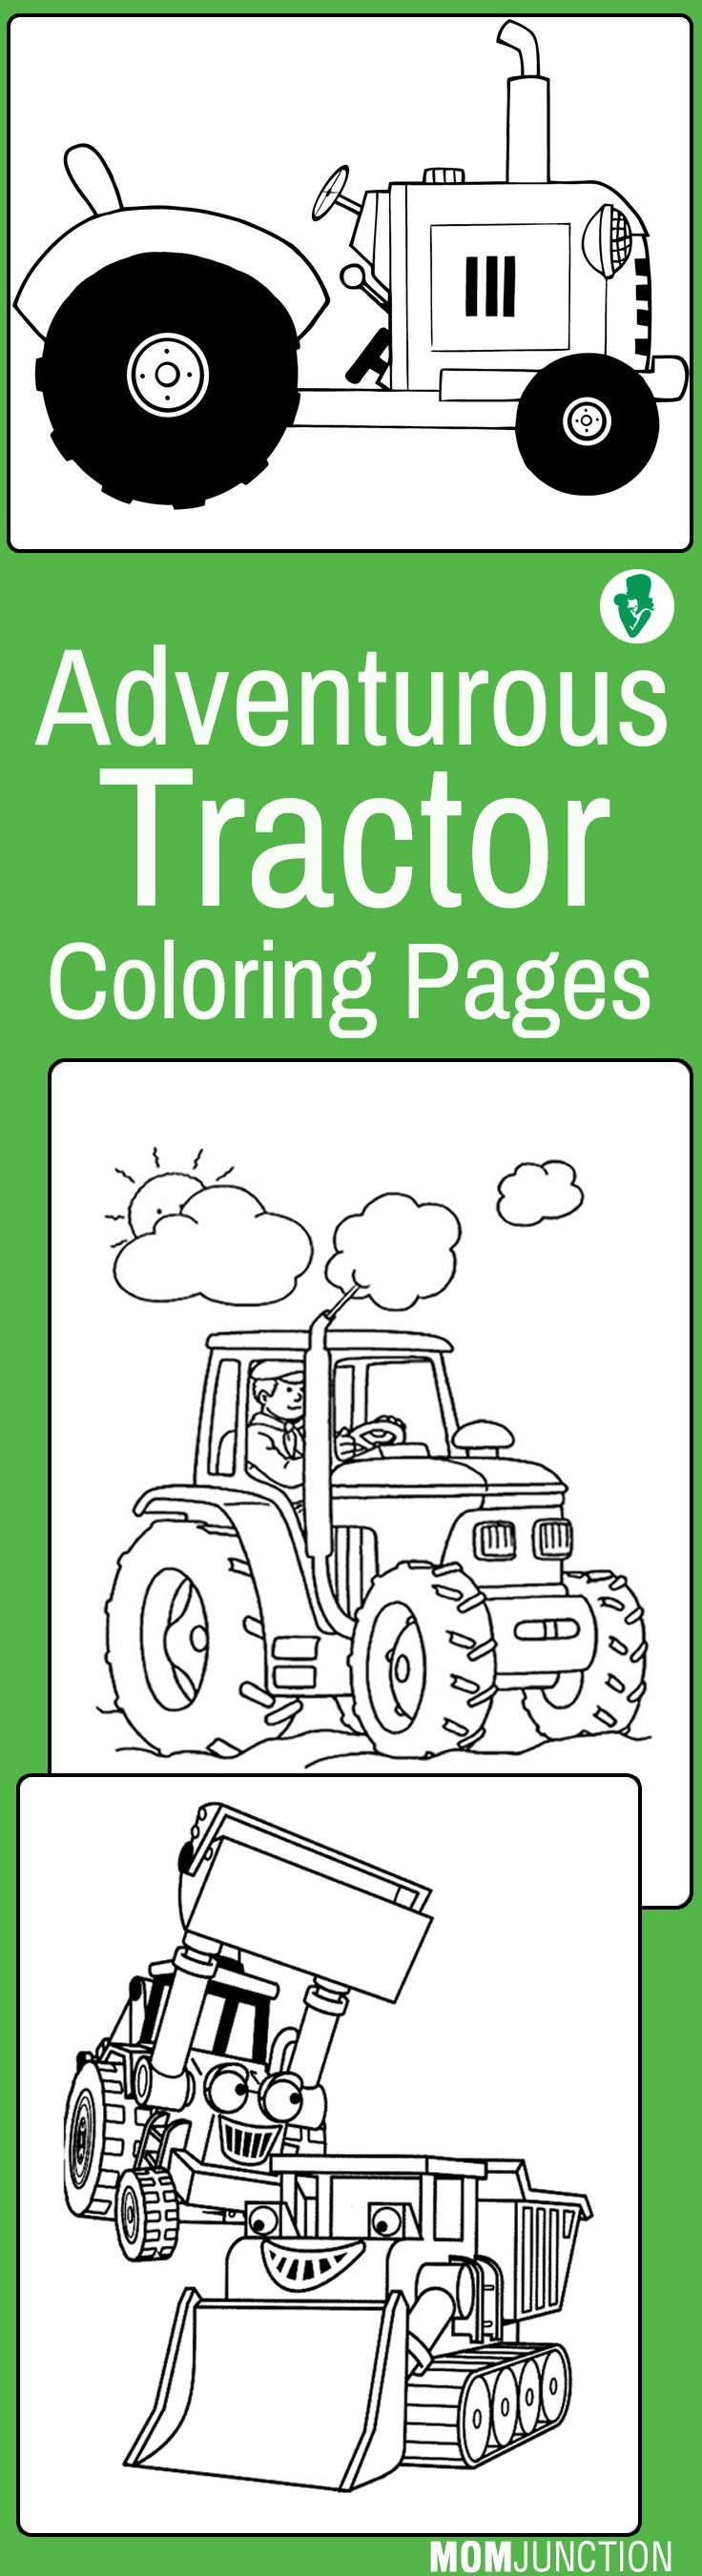 Tractor coloring pages for toddlers - Top 25 Free Printable Tractor Coloring Pages Online